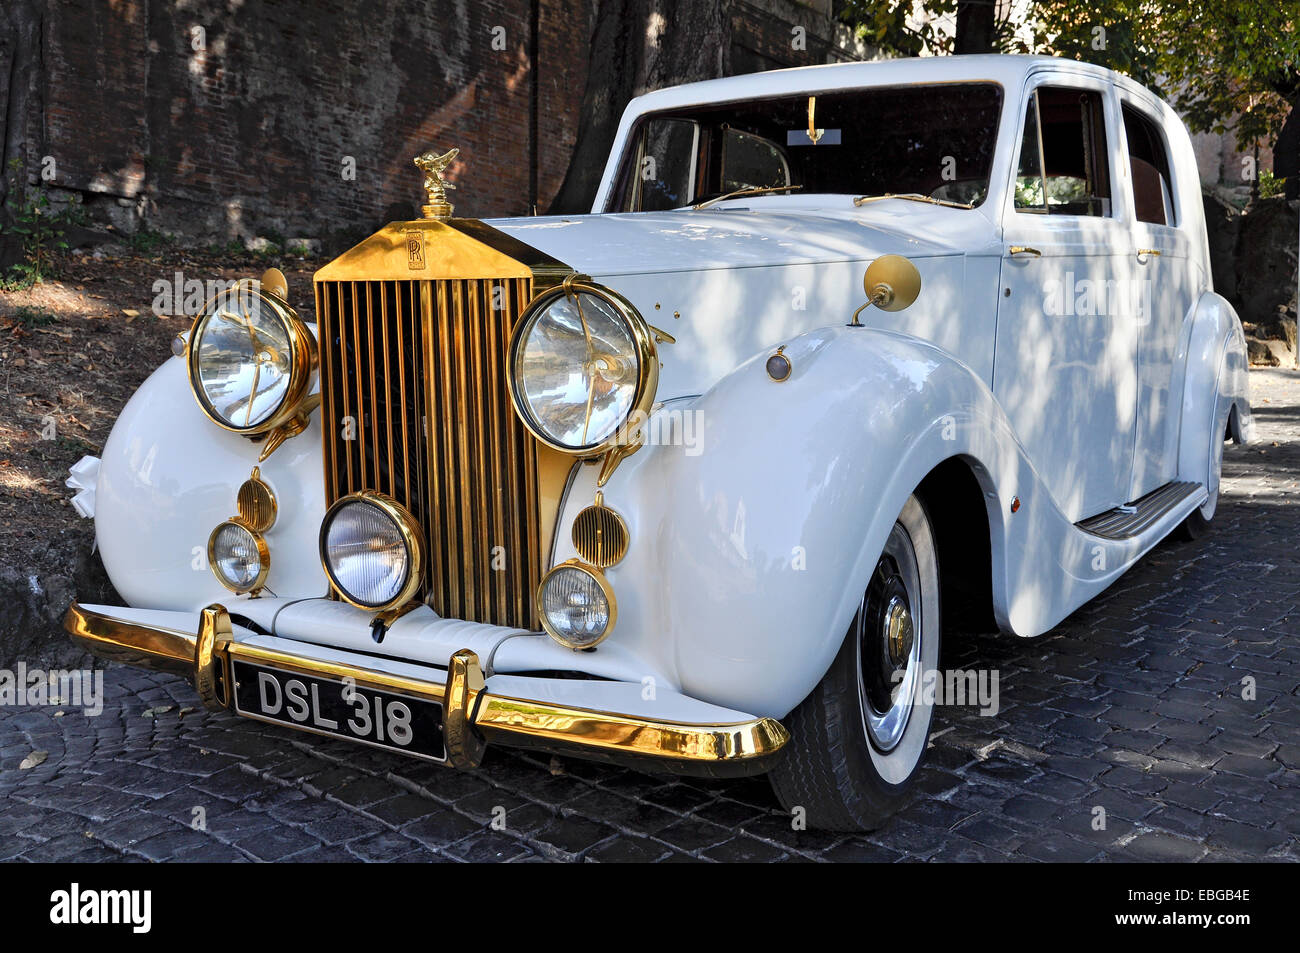 vintage rolls-royce silver wraith pullman limousine, built from 1946